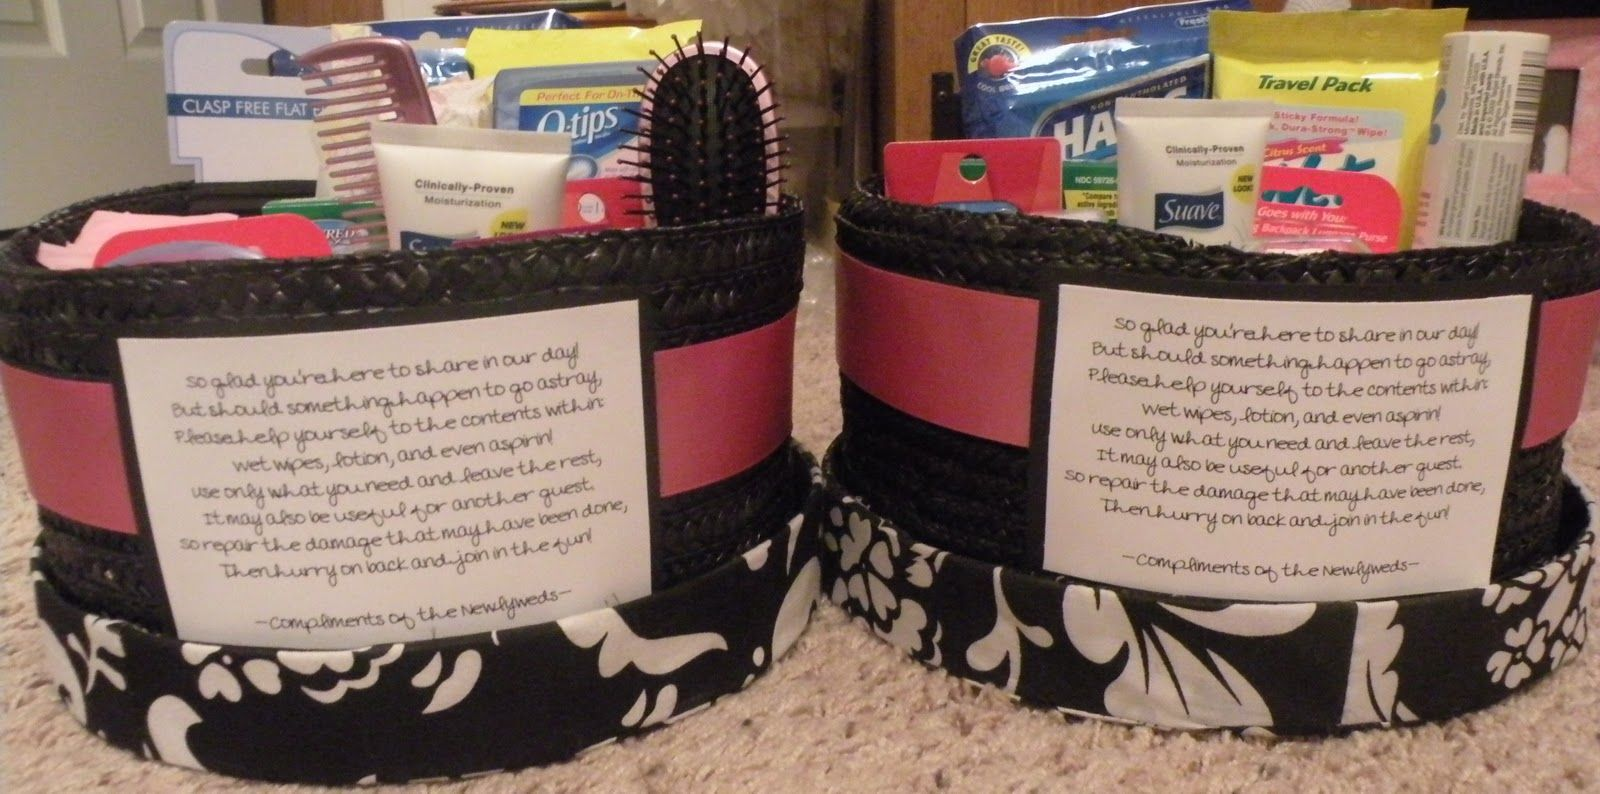 bathroom basket poems | found a little poem for the sign and edited it a bit to fit us ...